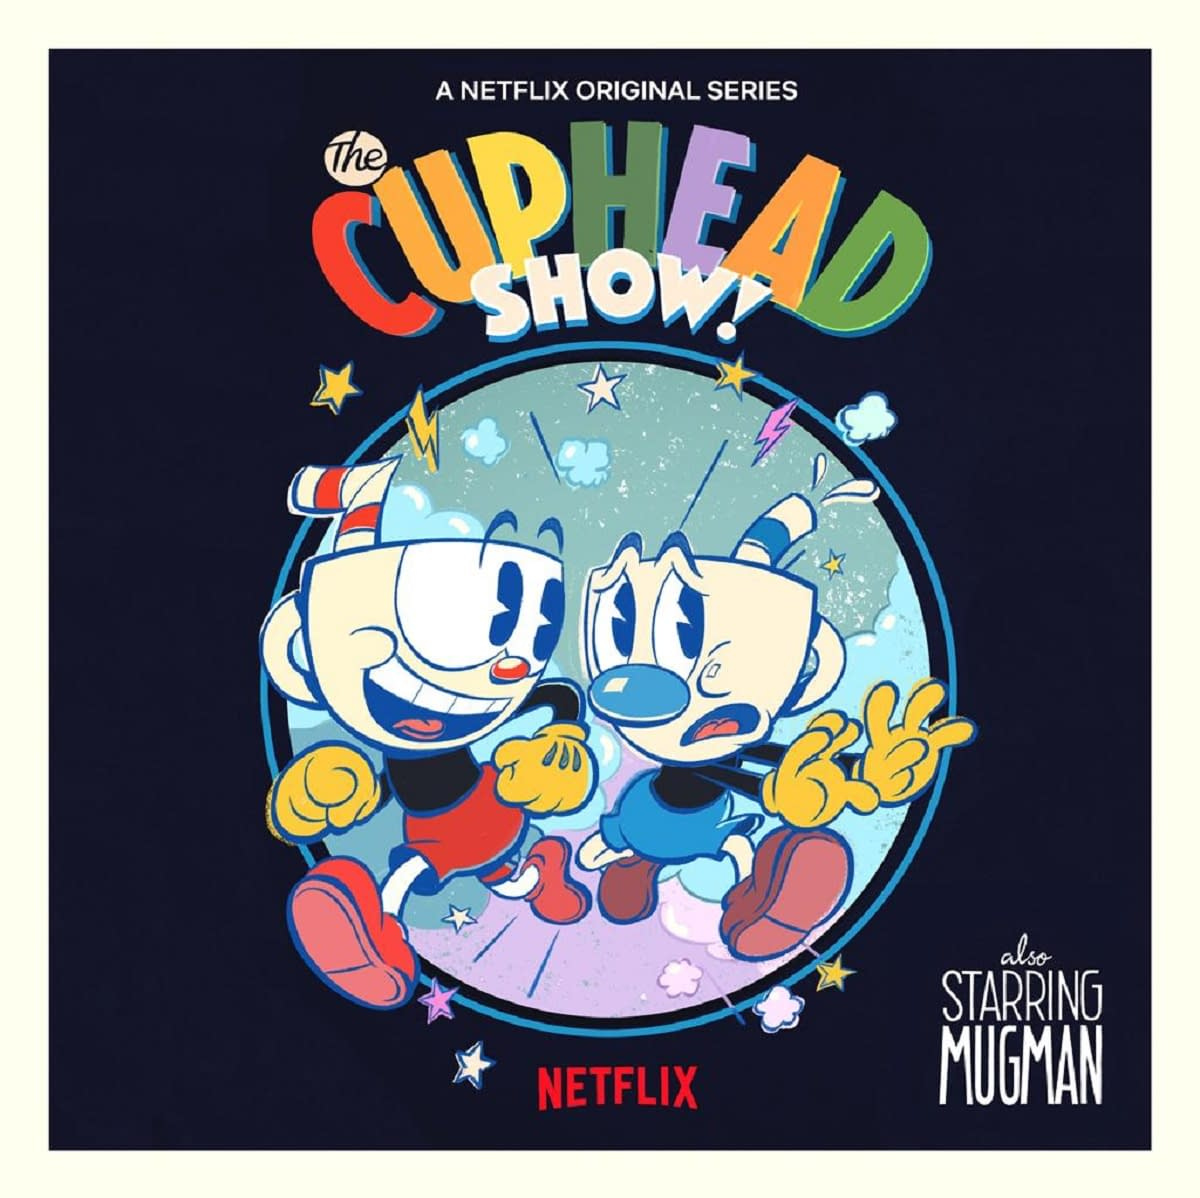 """""""The Cuphead Show!"""": Cuphead & Friends Set for All-Ages Animated Netflix Series"""